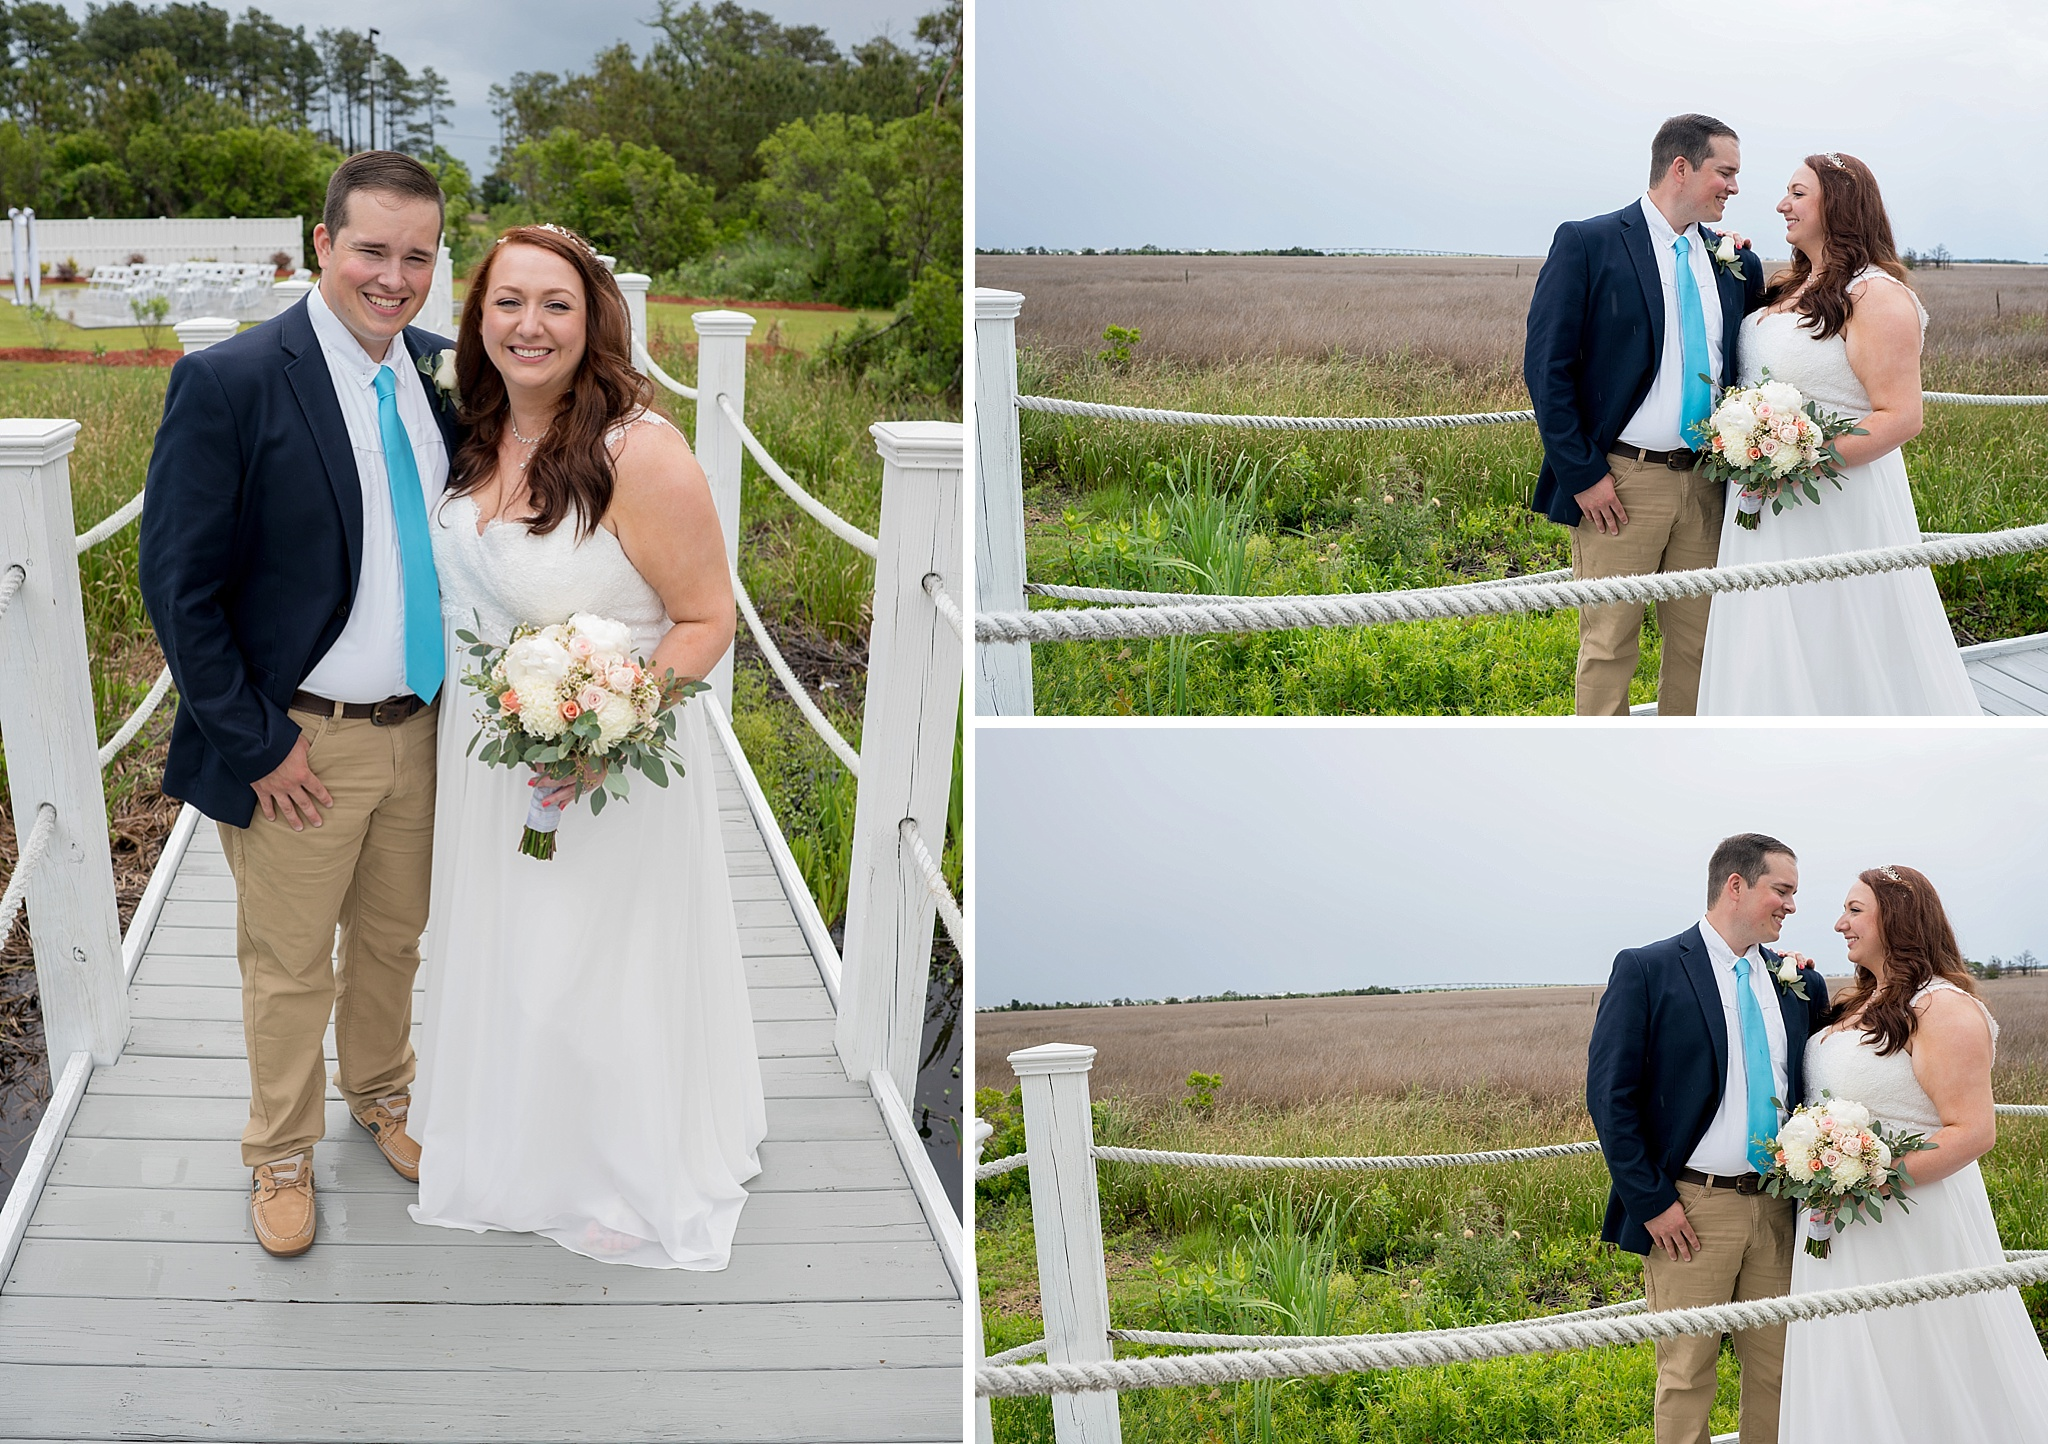 Manteo-NC-Wedding-Photographer-131.jpg